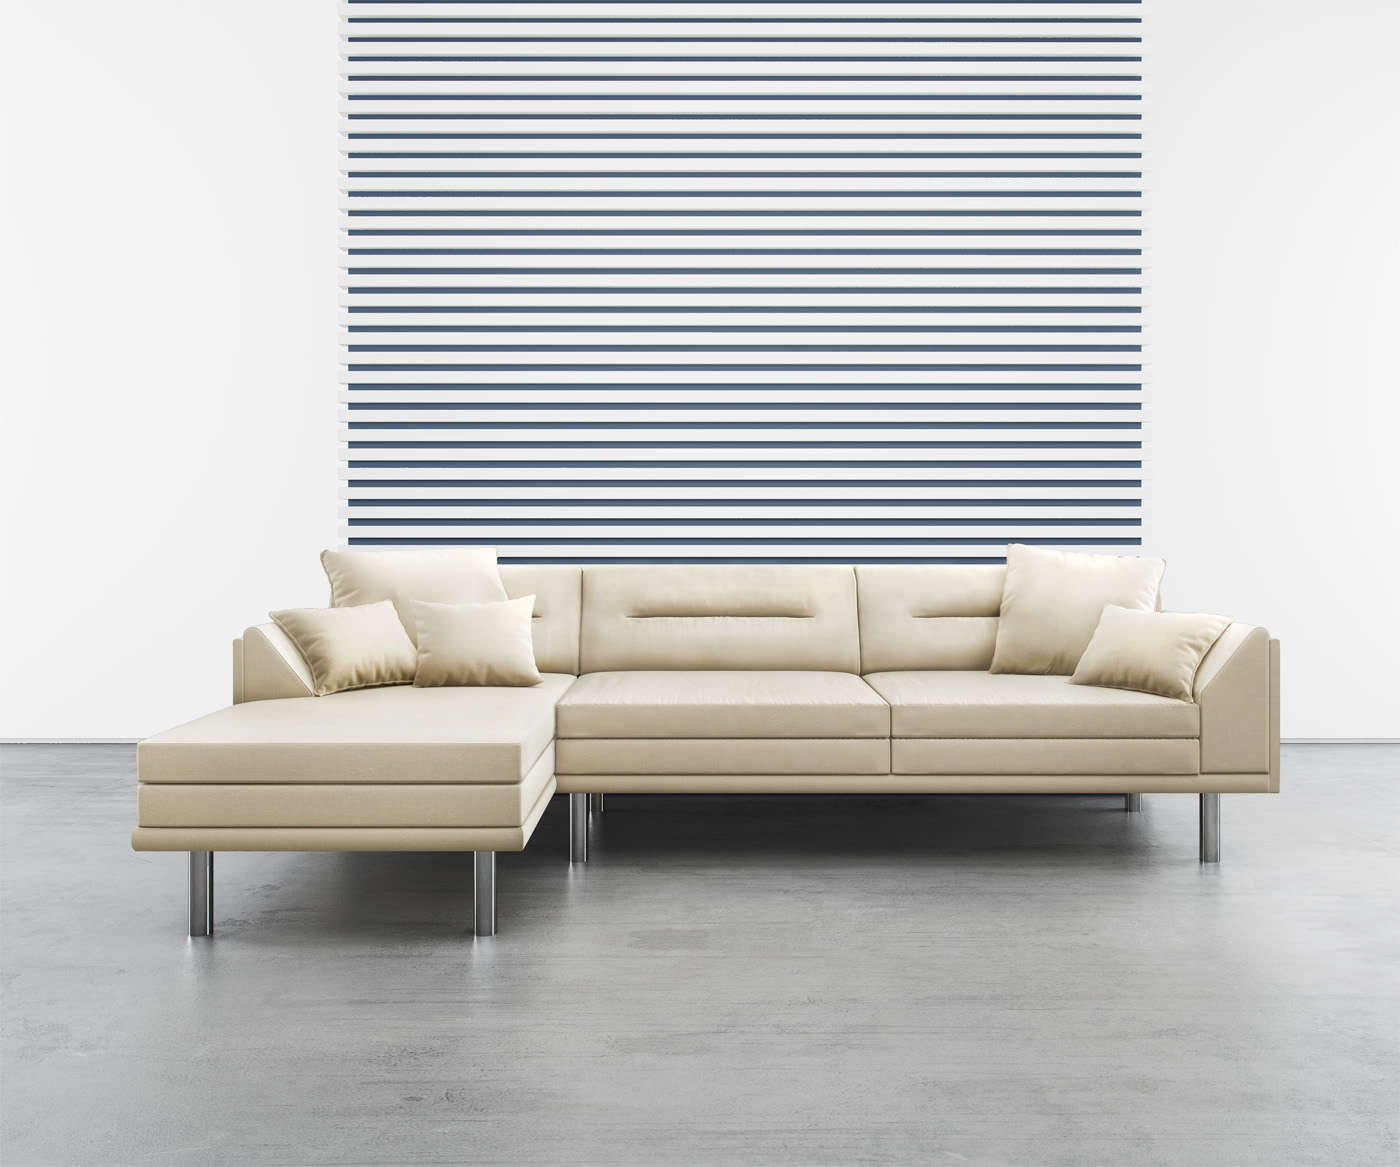 Milano, sectional